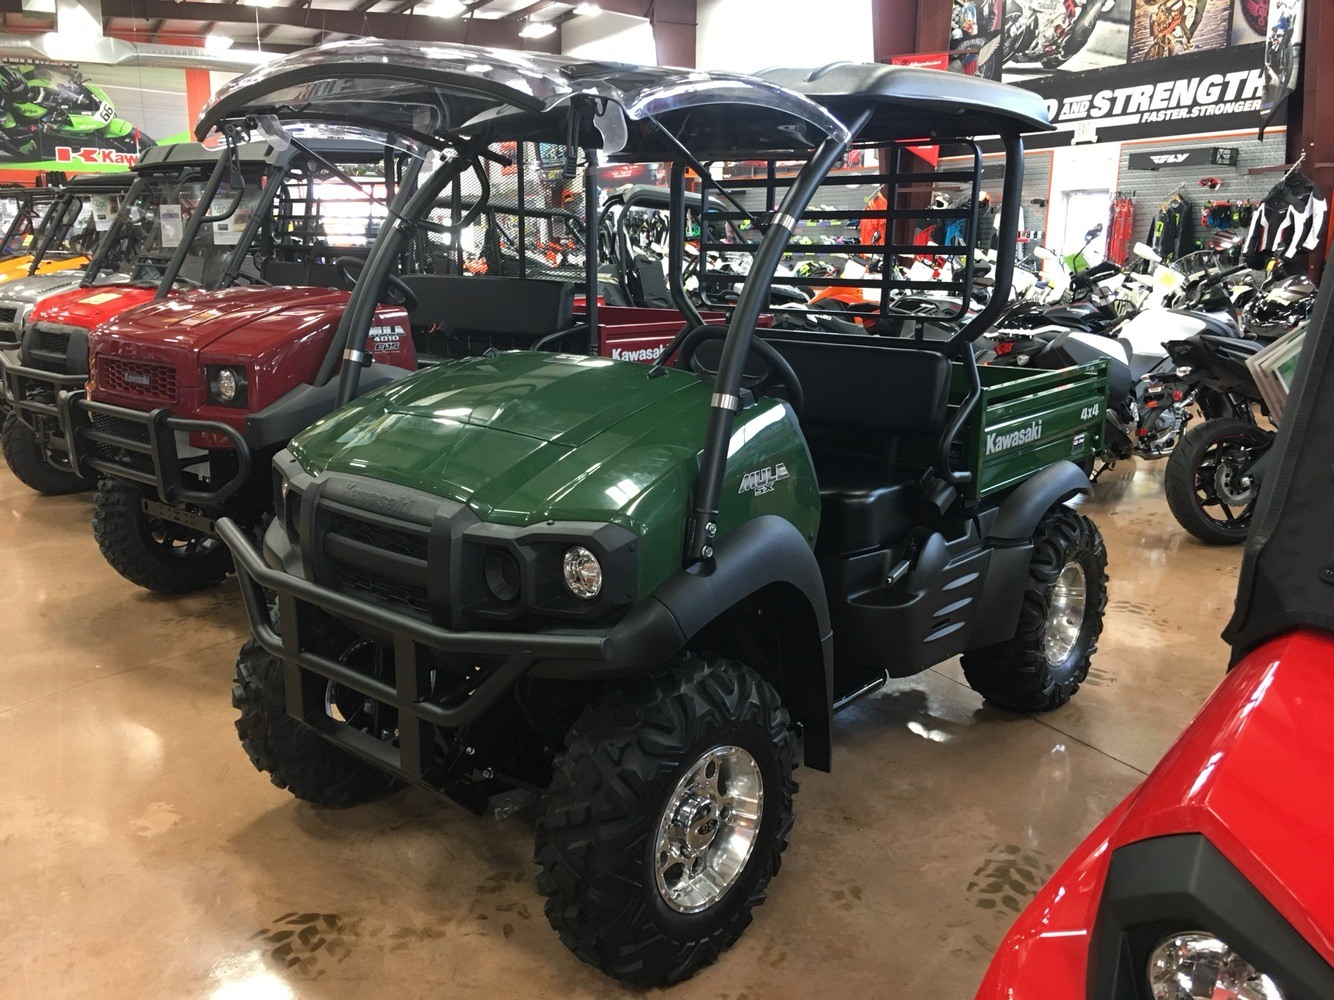 2019 Kawasaki Mule SX 4X4 in Evansville, Indiana - Photo 10